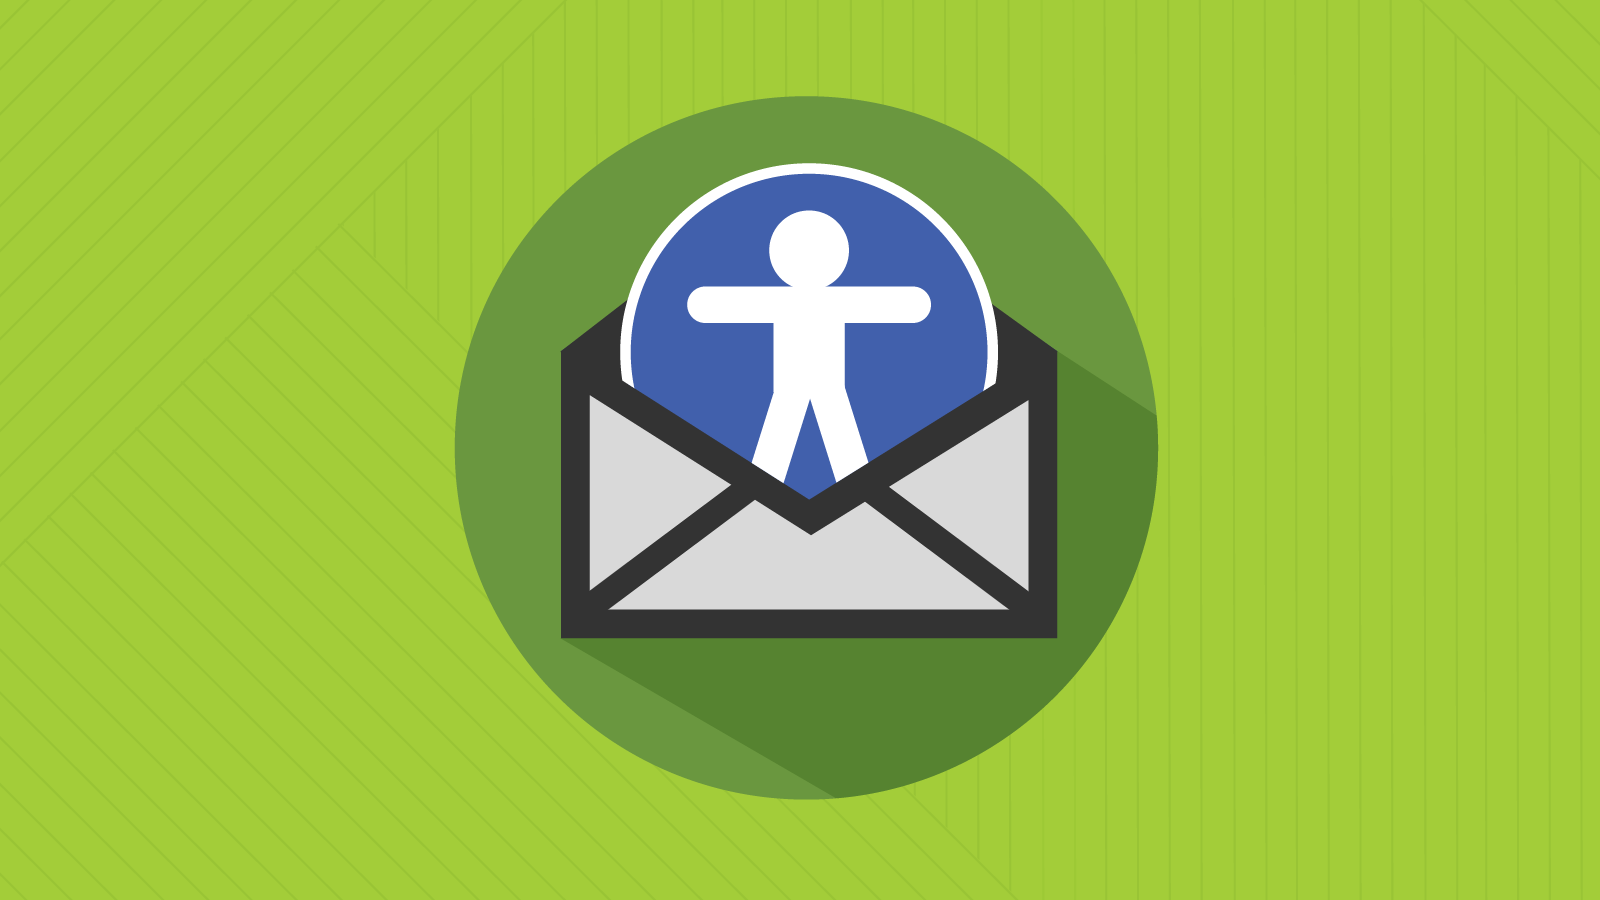 accessibility icon emerges from an email envelope